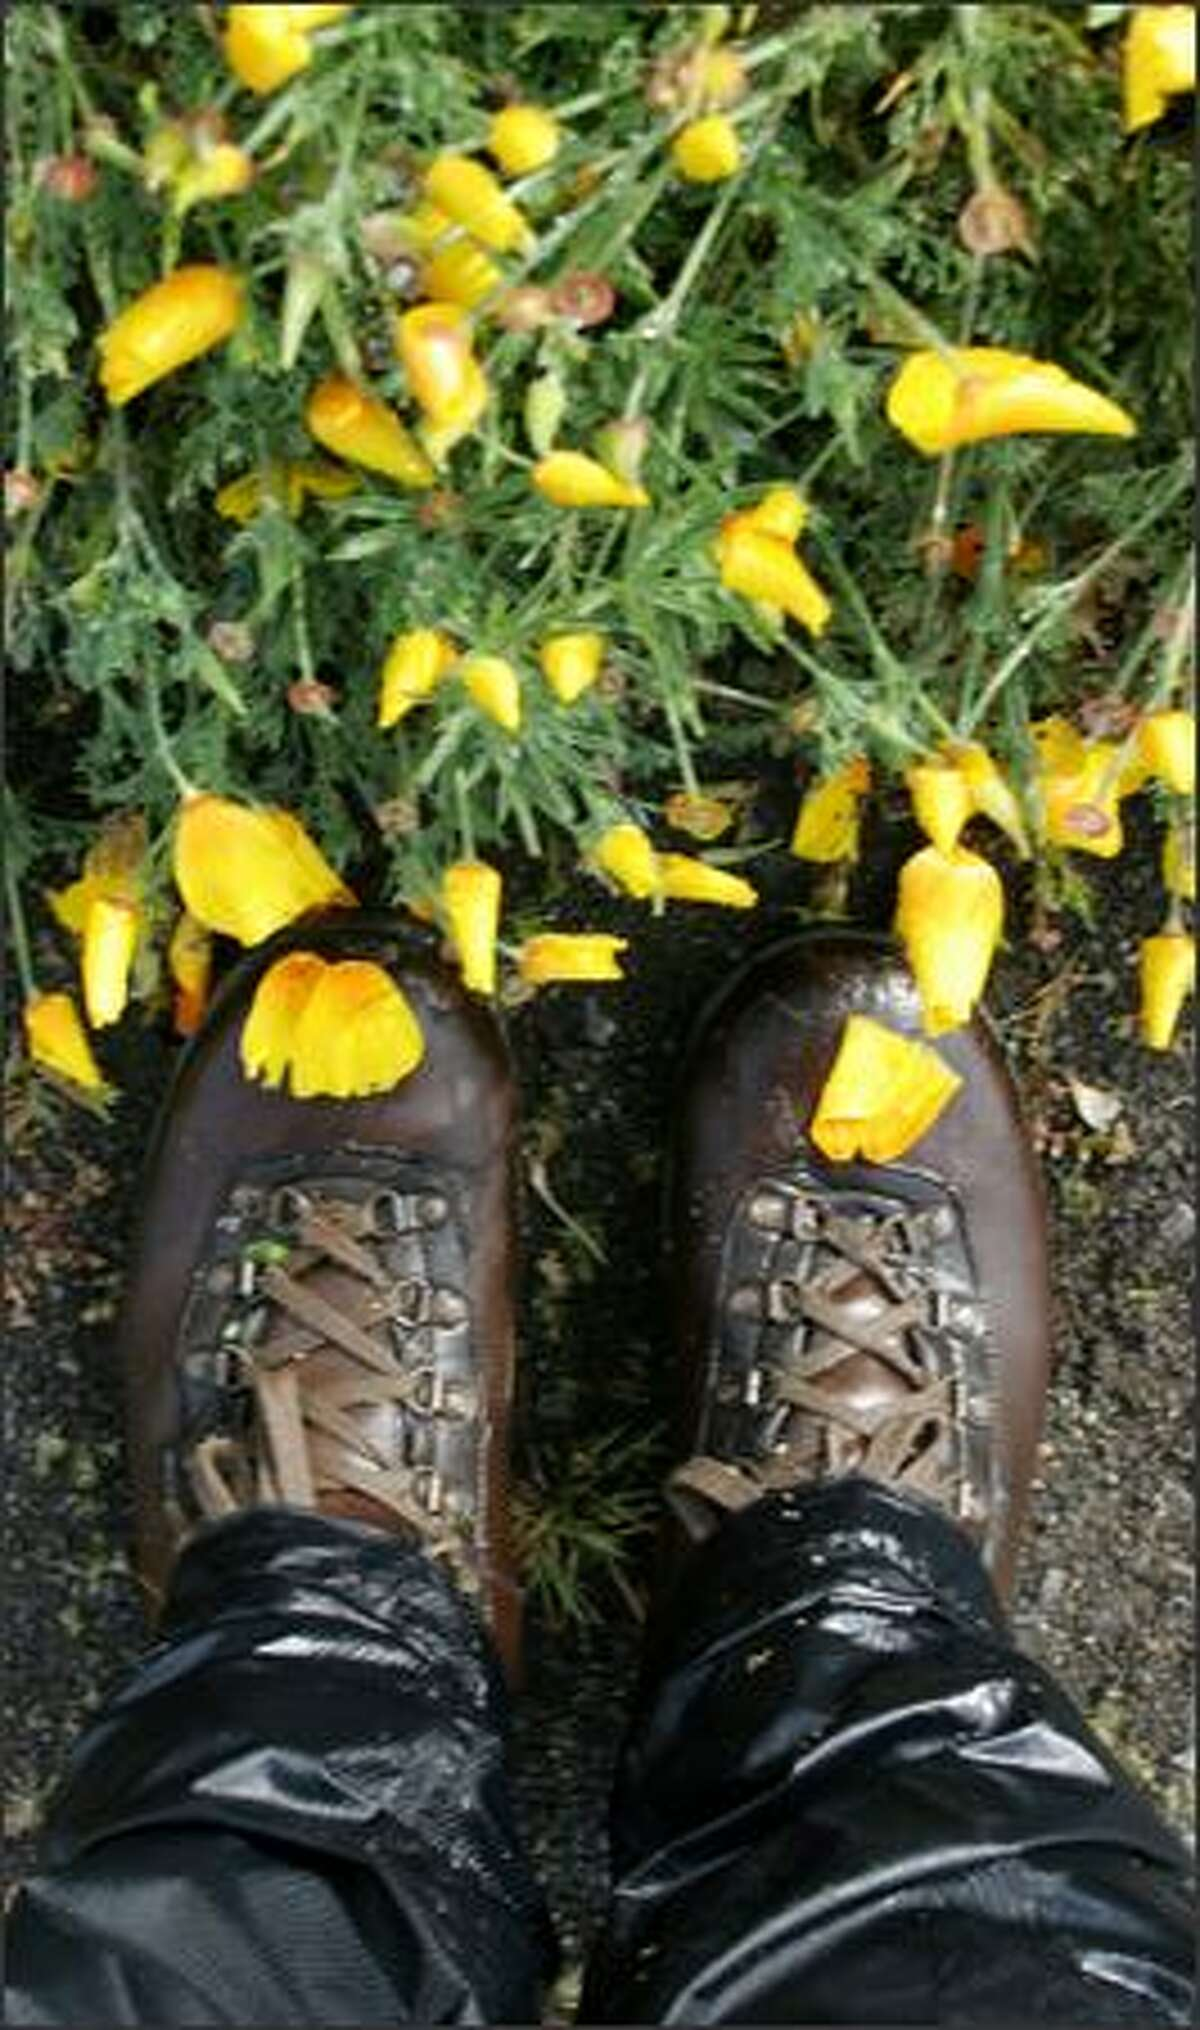 California poppies, the California State flower, are rampant in the spring along Humboldt County's Lost Coast Trail.